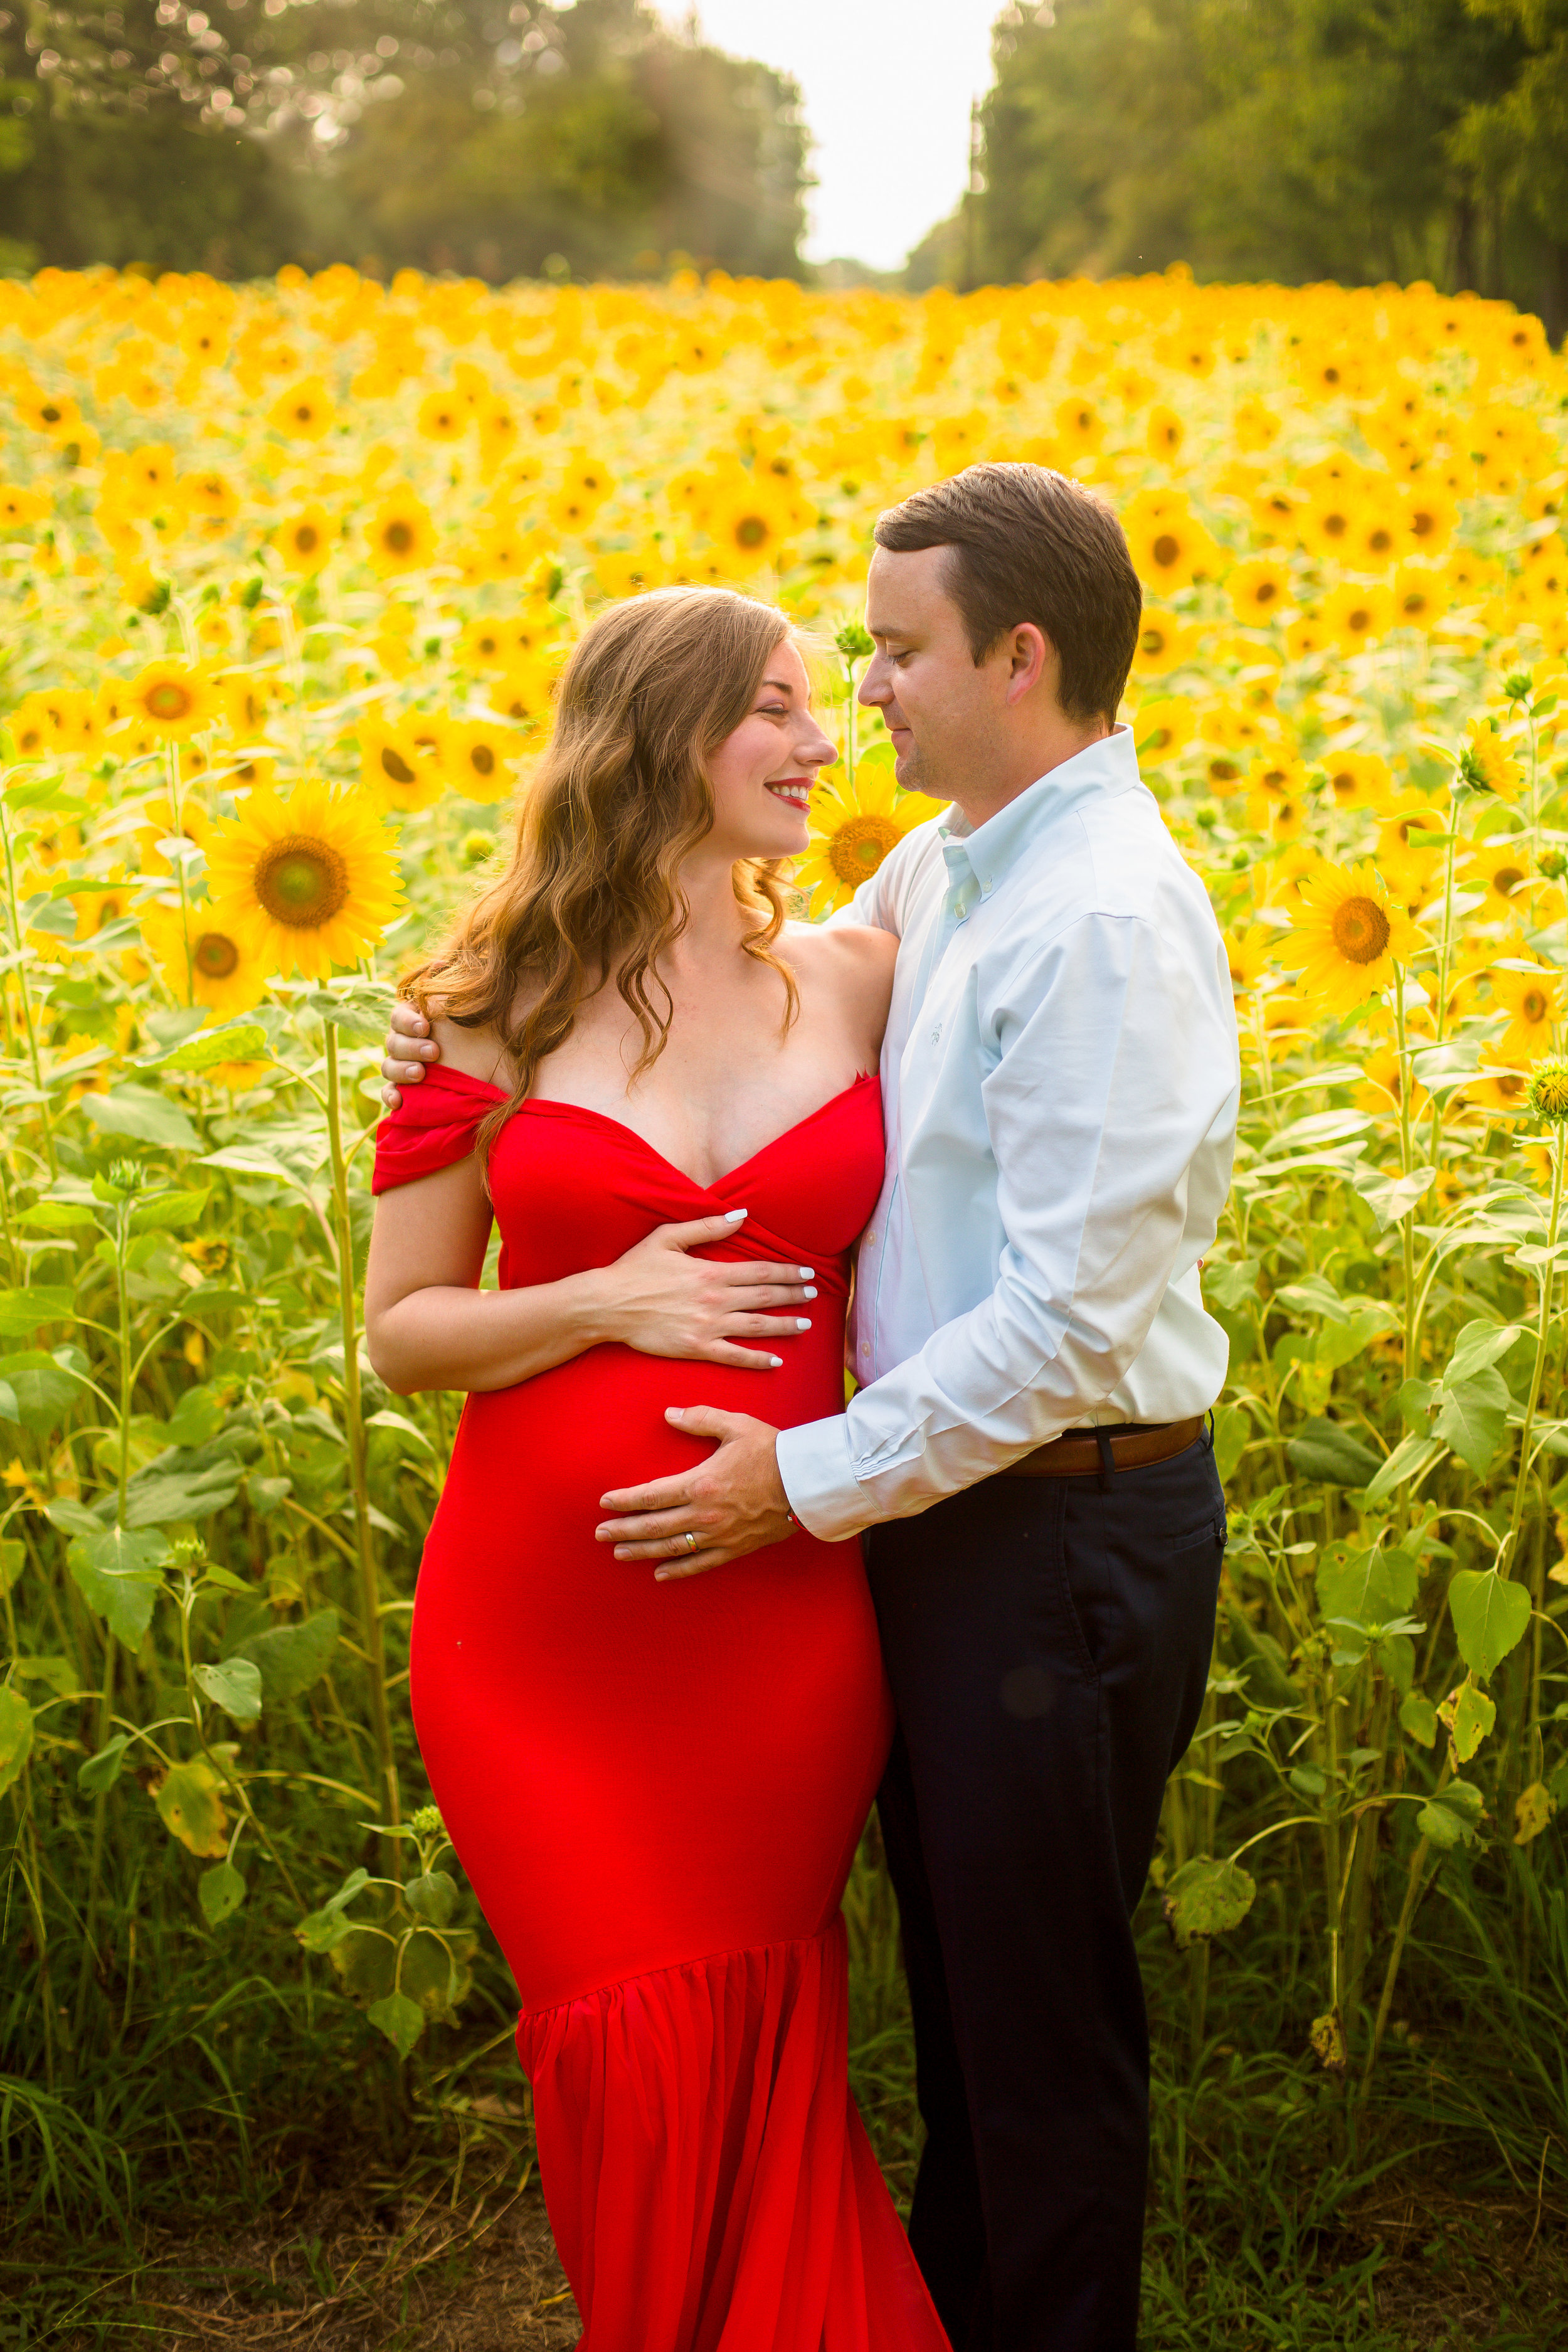 Alexis-&-Quent-Sunflower-Maternity-Nashville-Maternity-Photographer-Chelsea-Meadows-Photography-(4).jpg